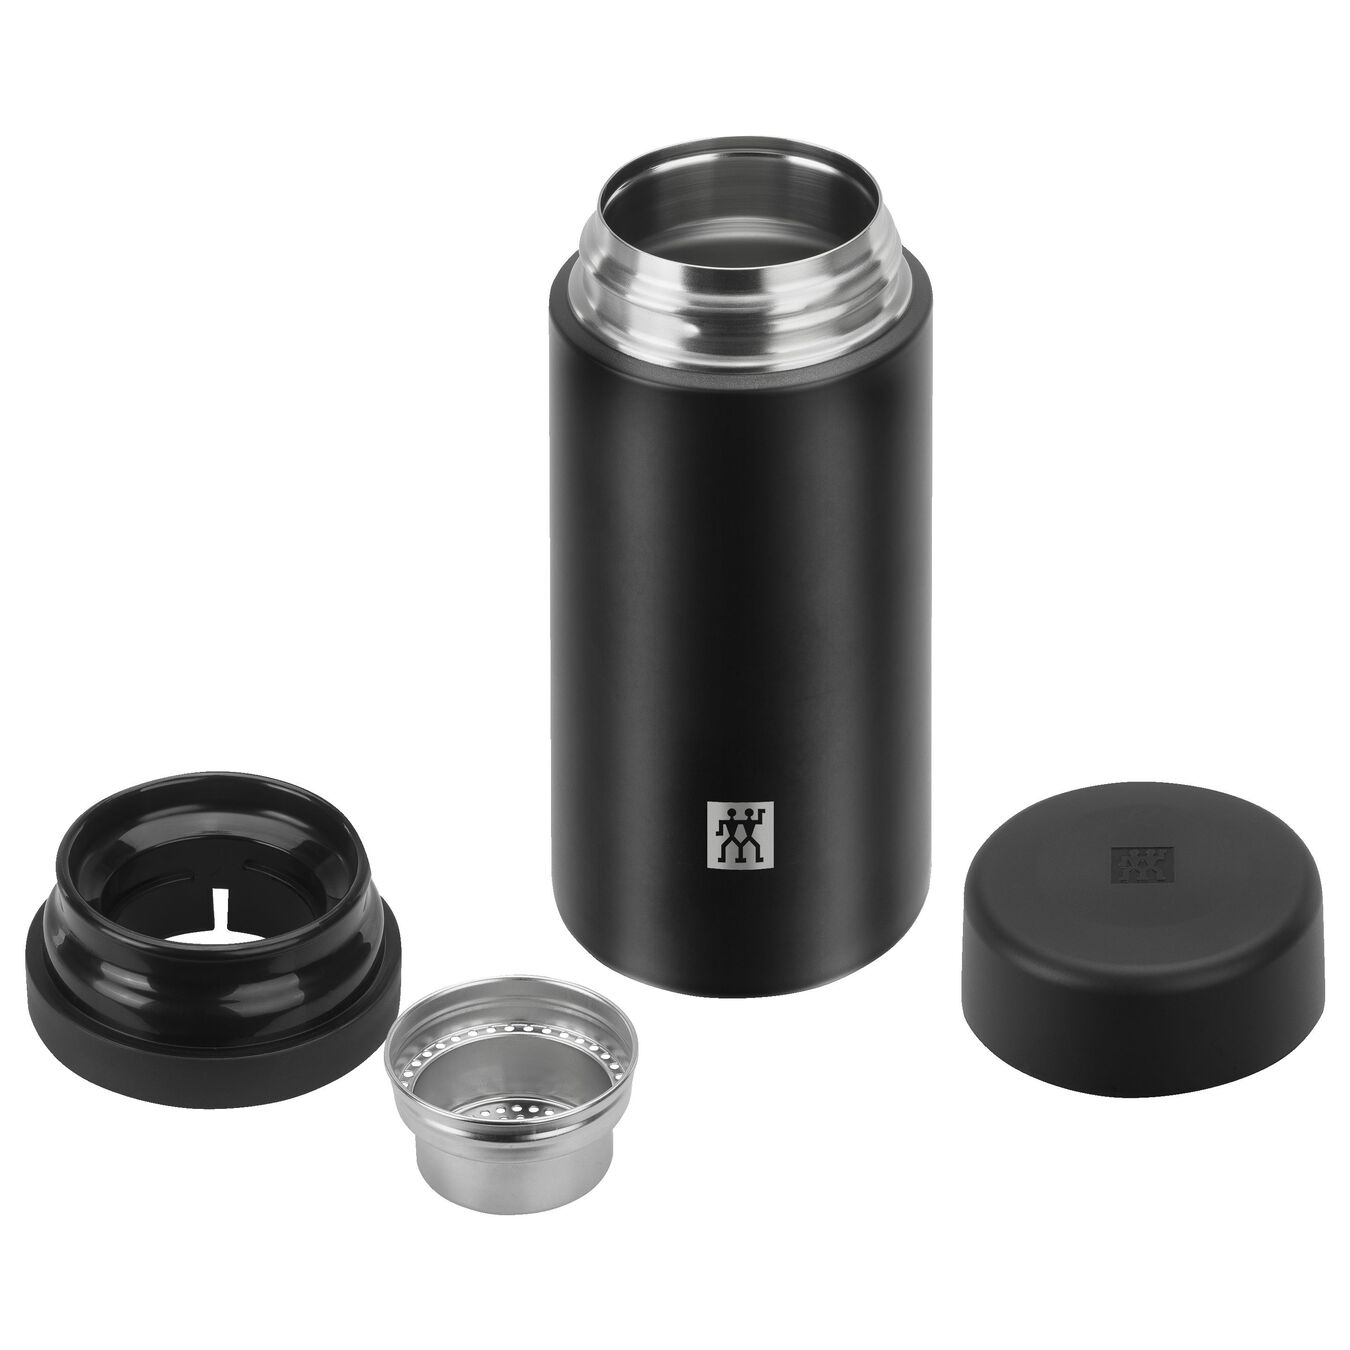 14.25-oz  Thermos flask,,large 3